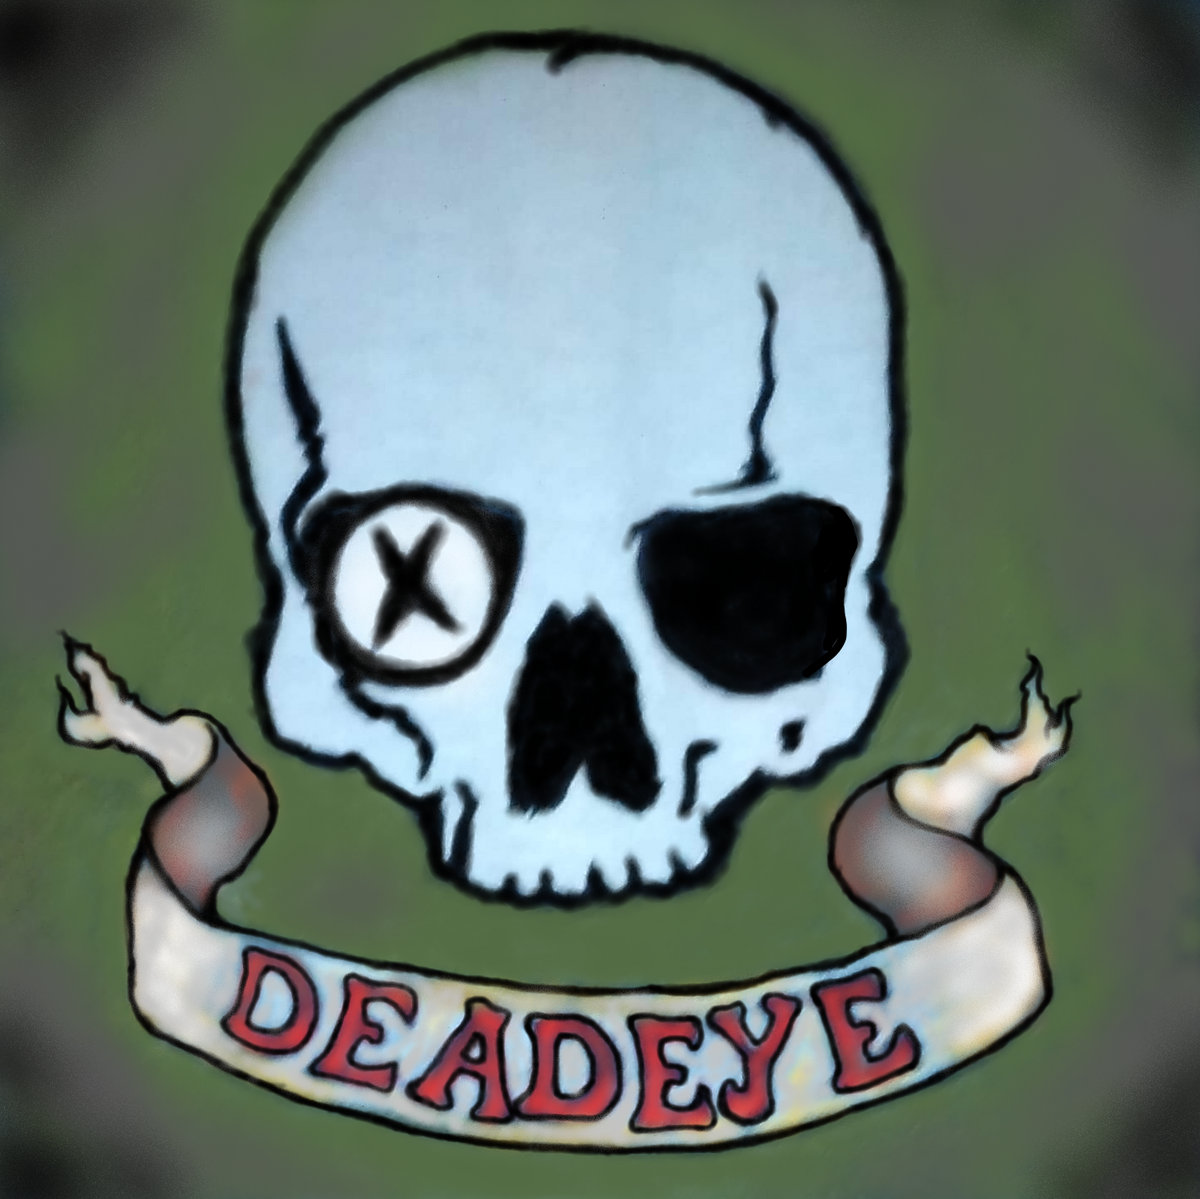 Deadeye Avatar